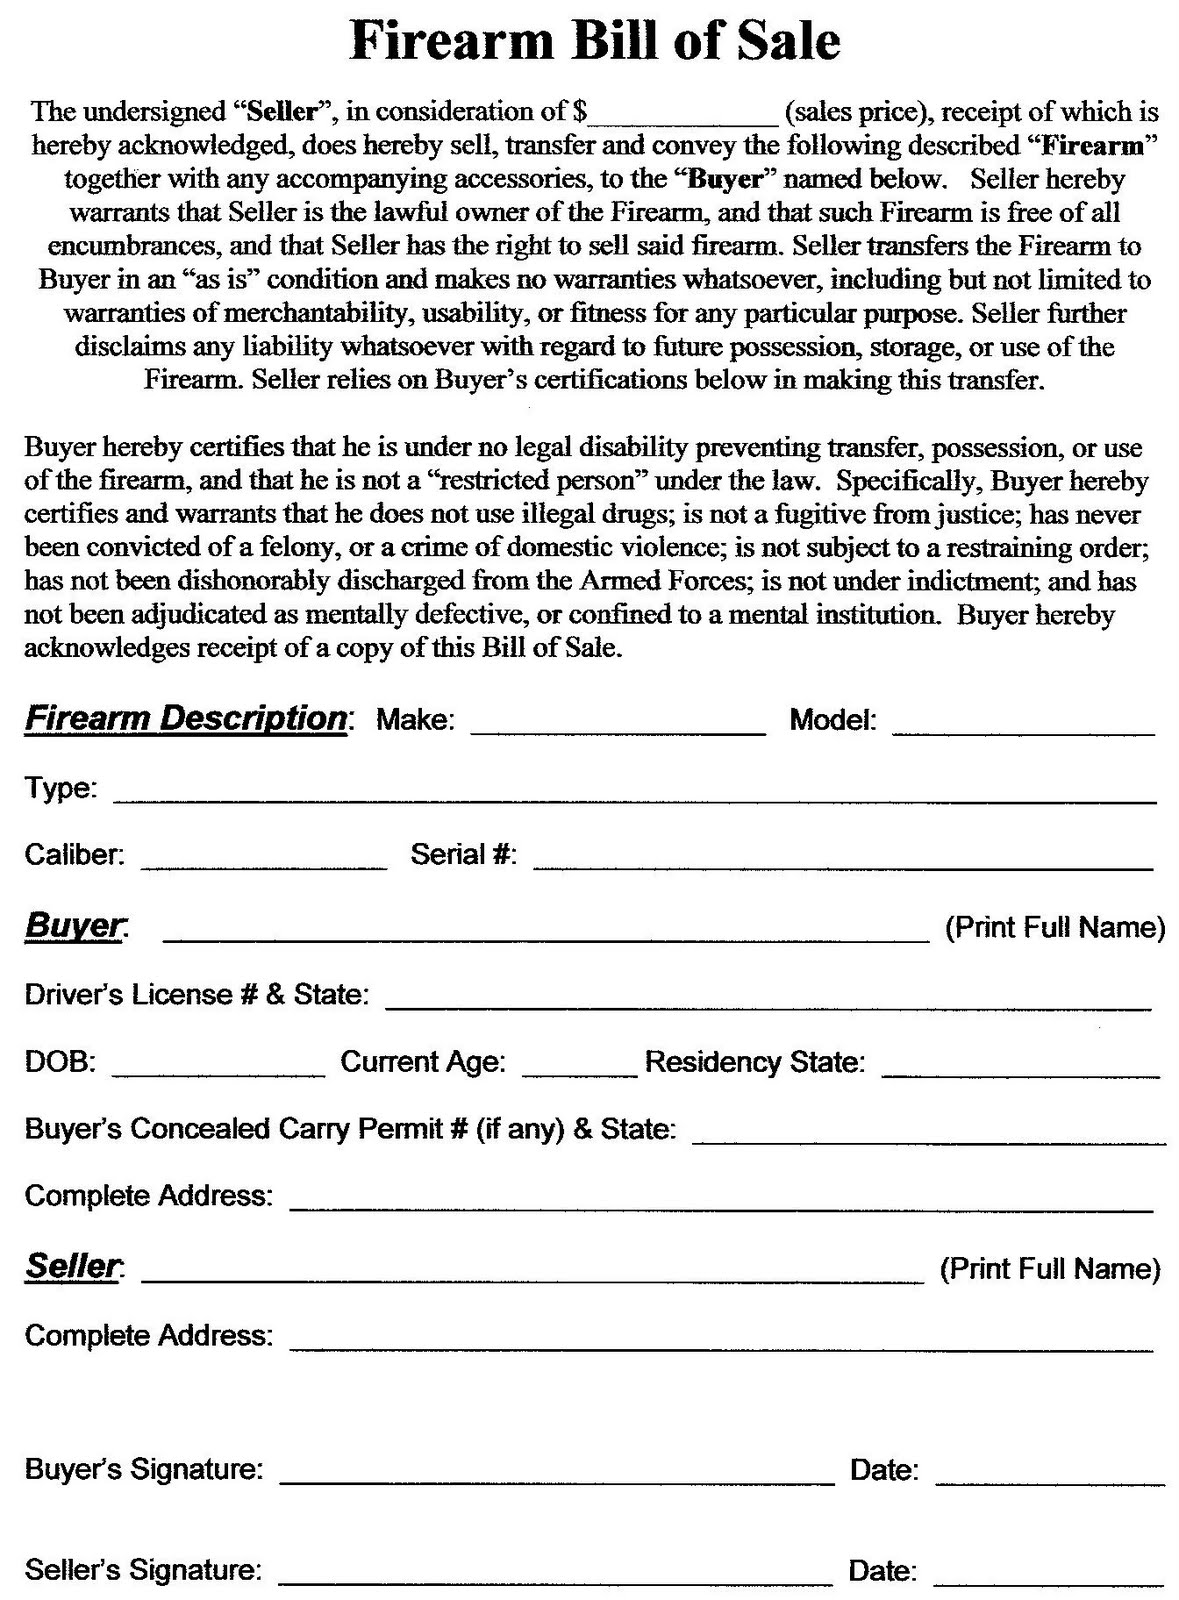 Firearm Bill Of Sale - Invoice sample word format cheapest online gun store